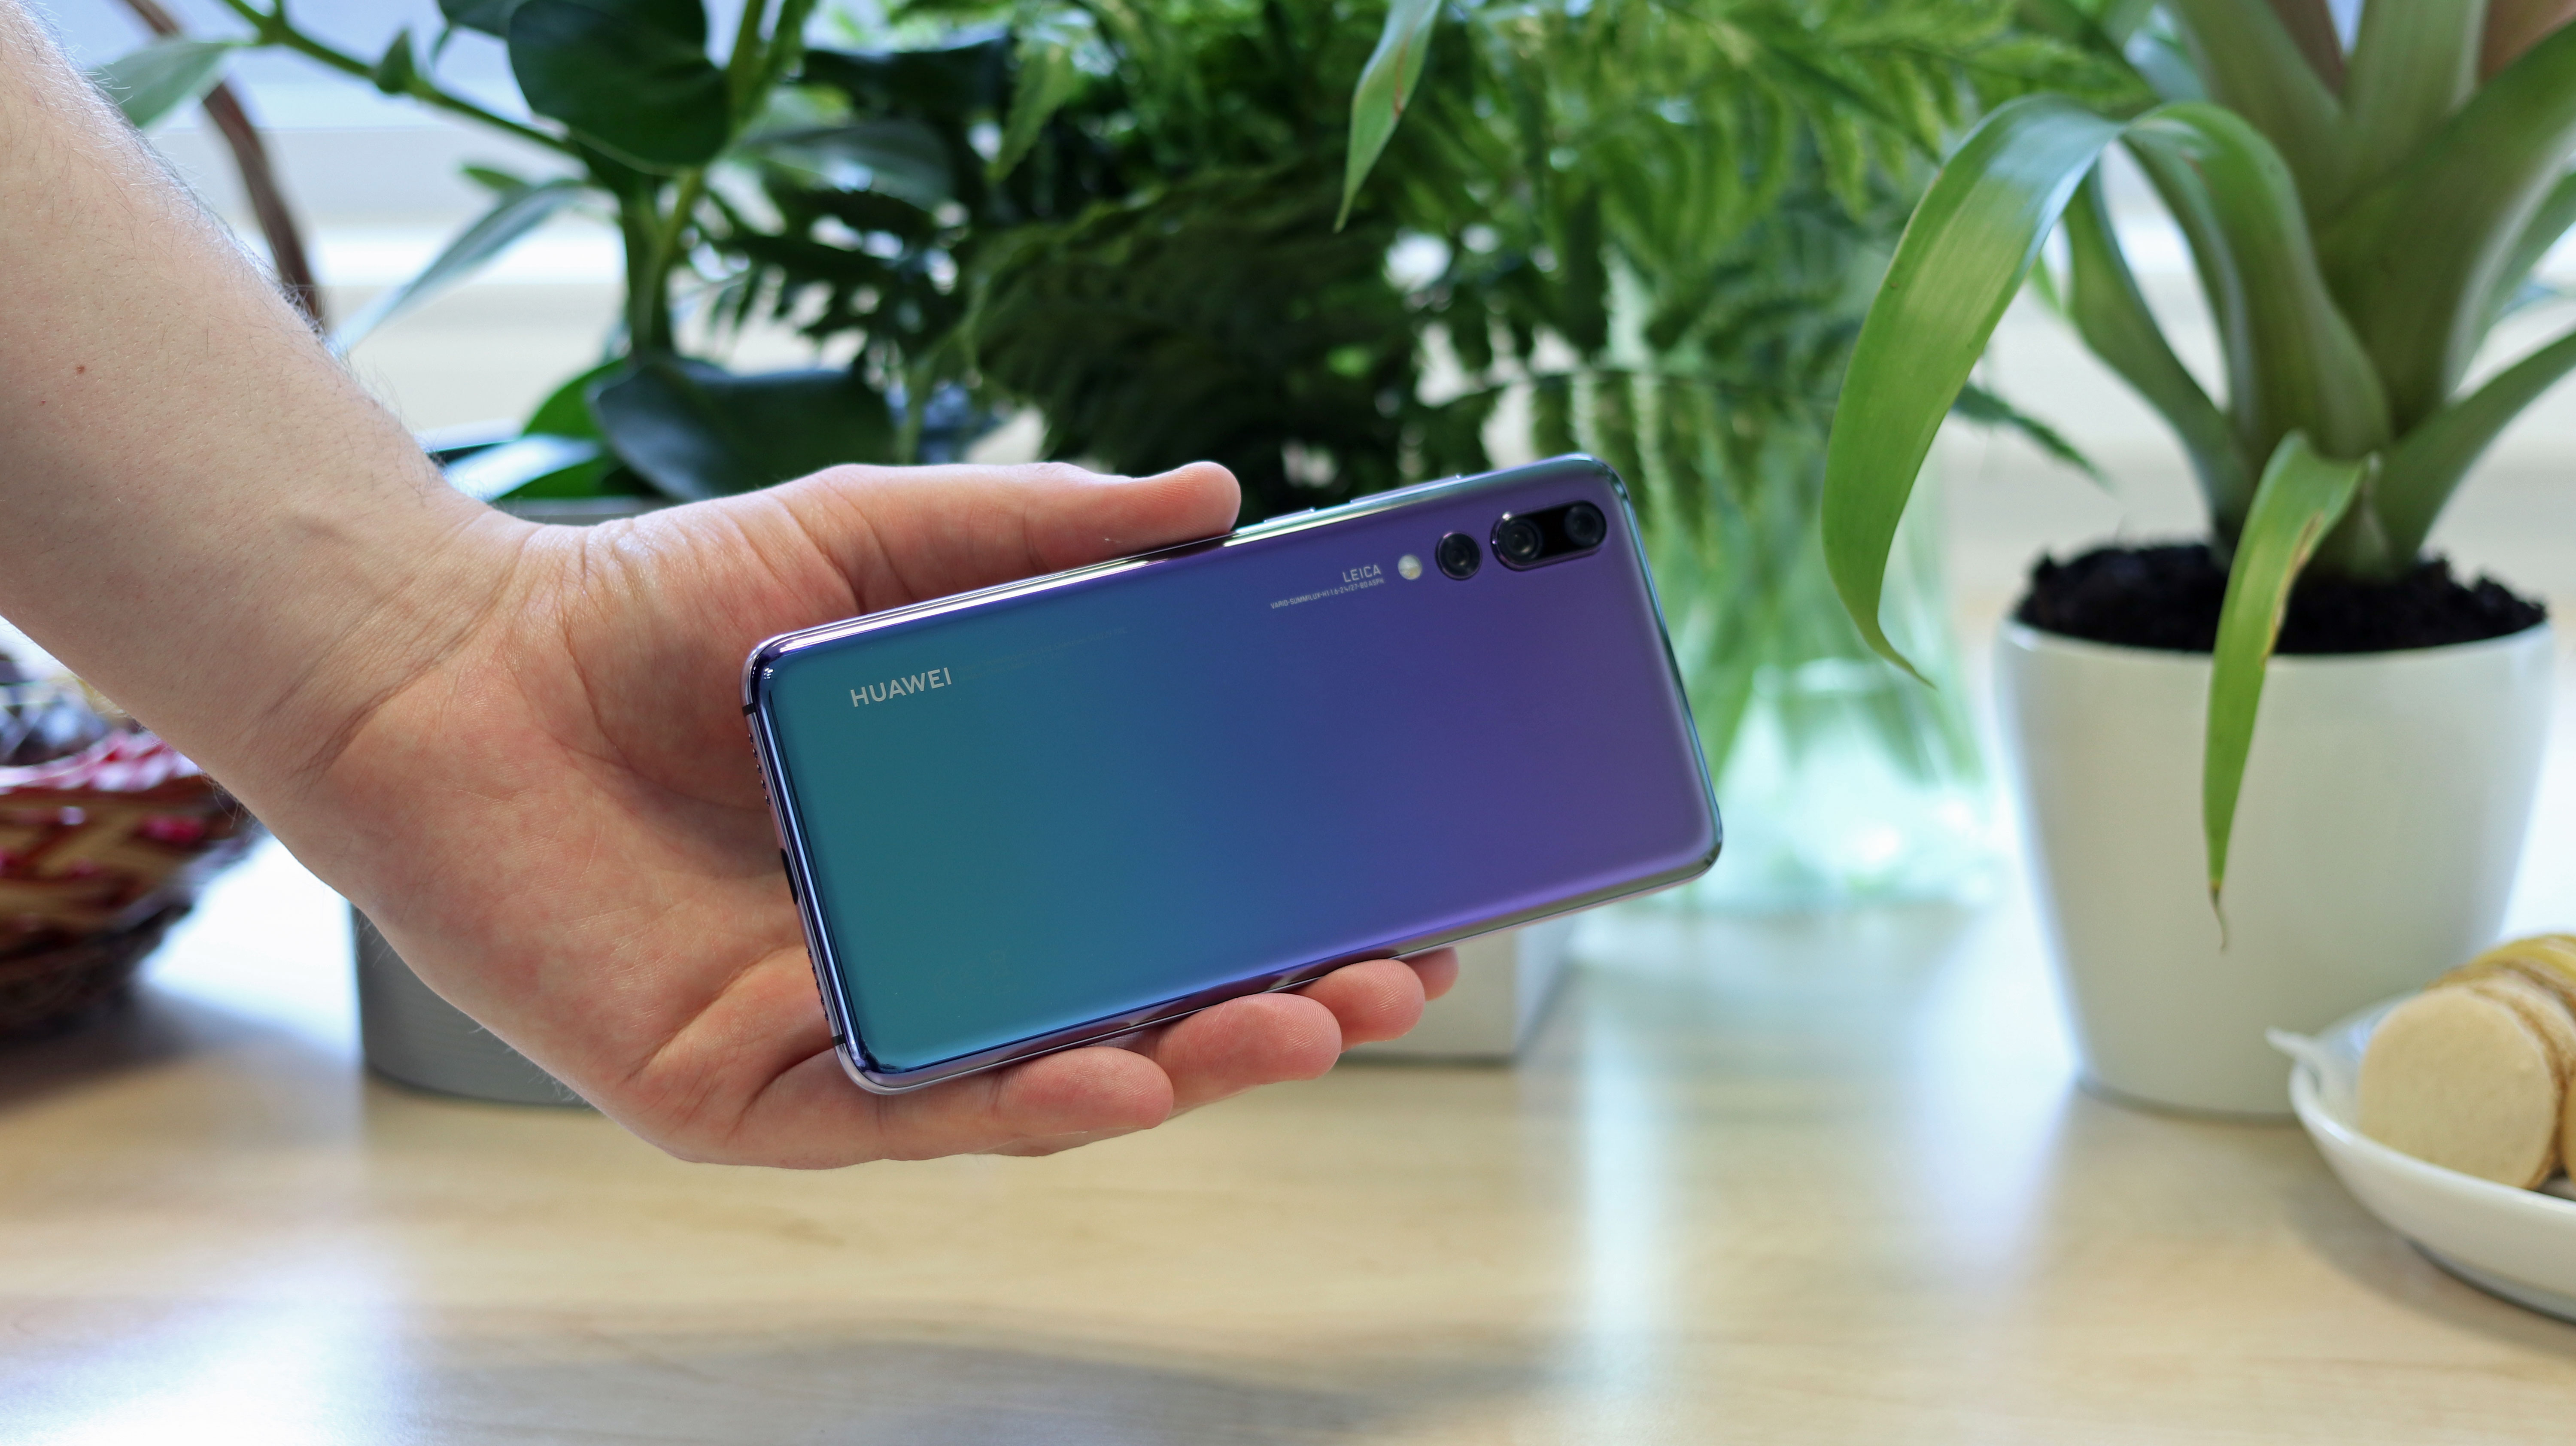 Huawei Mate 20 release date, price, news and leaks - iBlogiBlog